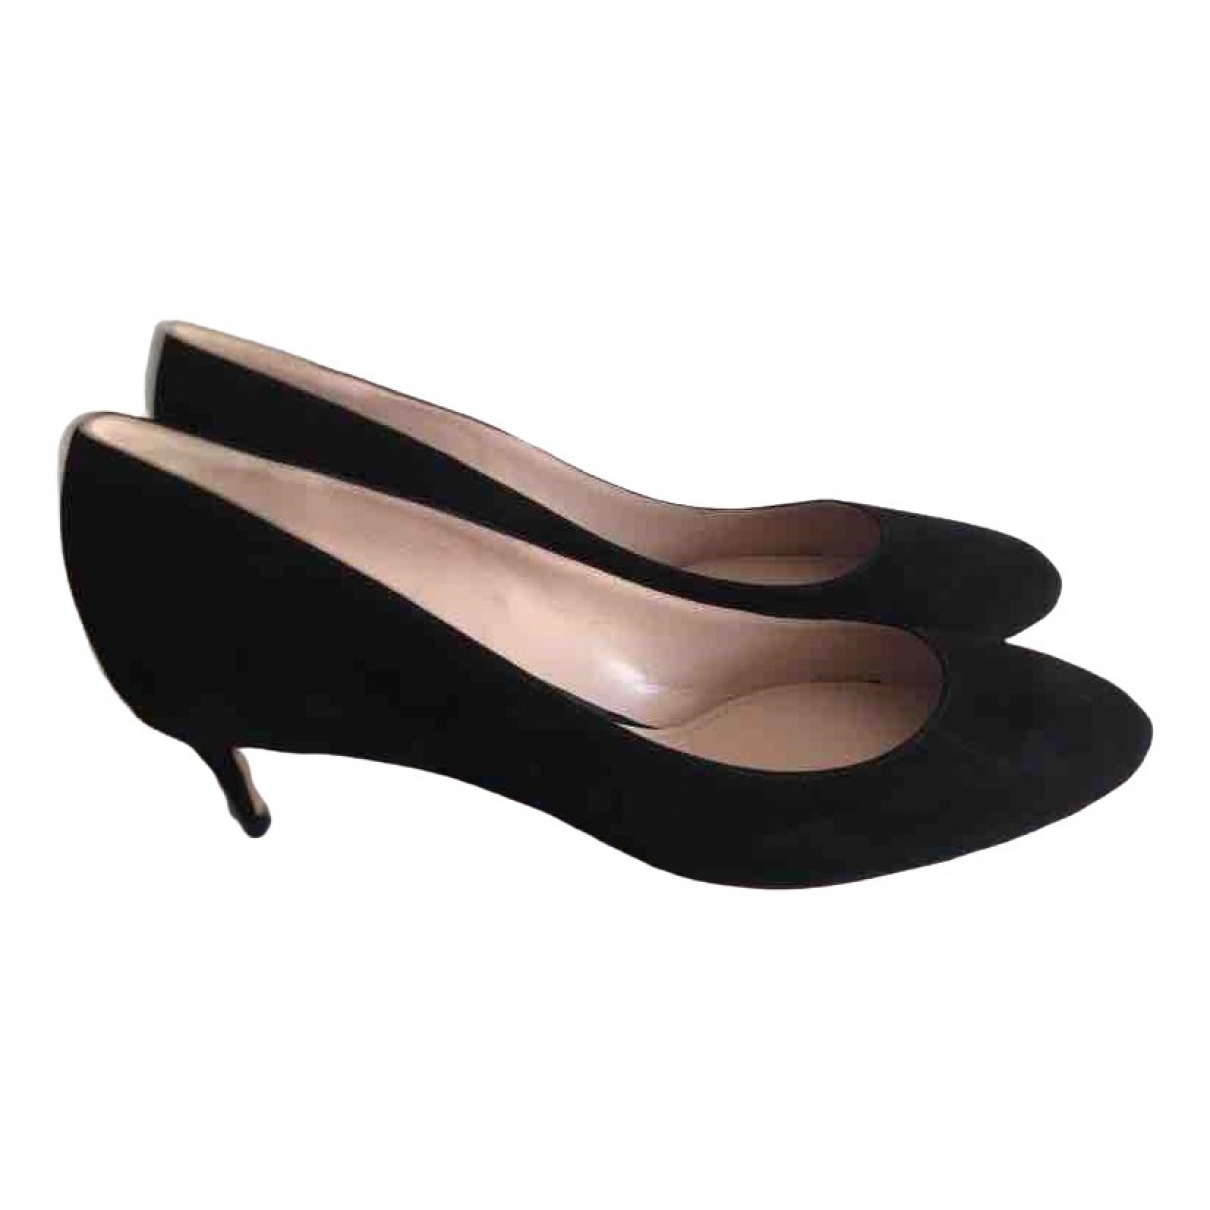 Miu Miu \N Pumps in  Schwarz Veloursleder